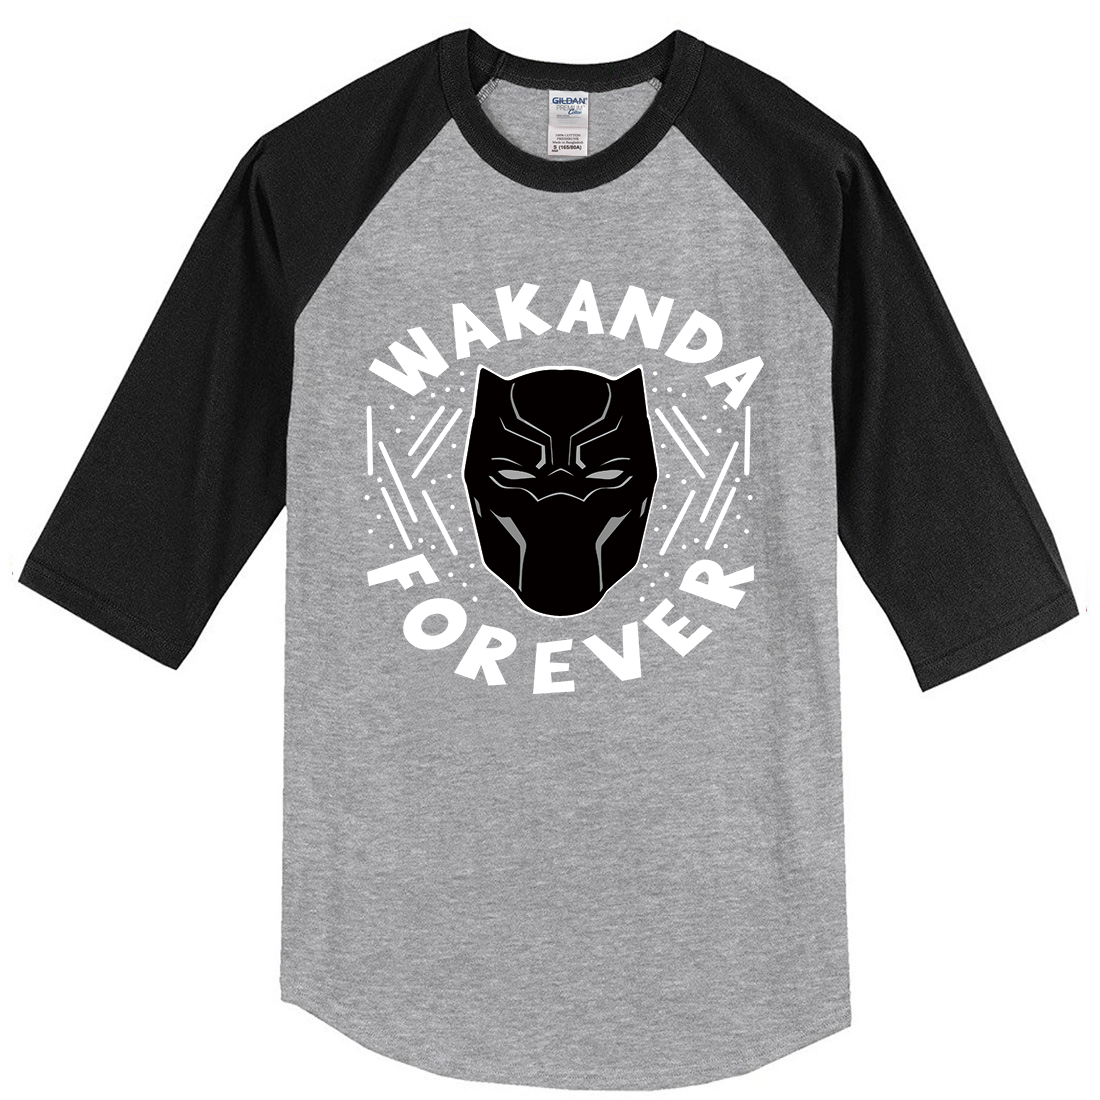 Hot Sale 2019 Fashion Spring Summer Men Shirt Streetwear Shirt Men's T-shirts WAKANDA FOREVER Black Panther Tops Hip Hop Tshirt